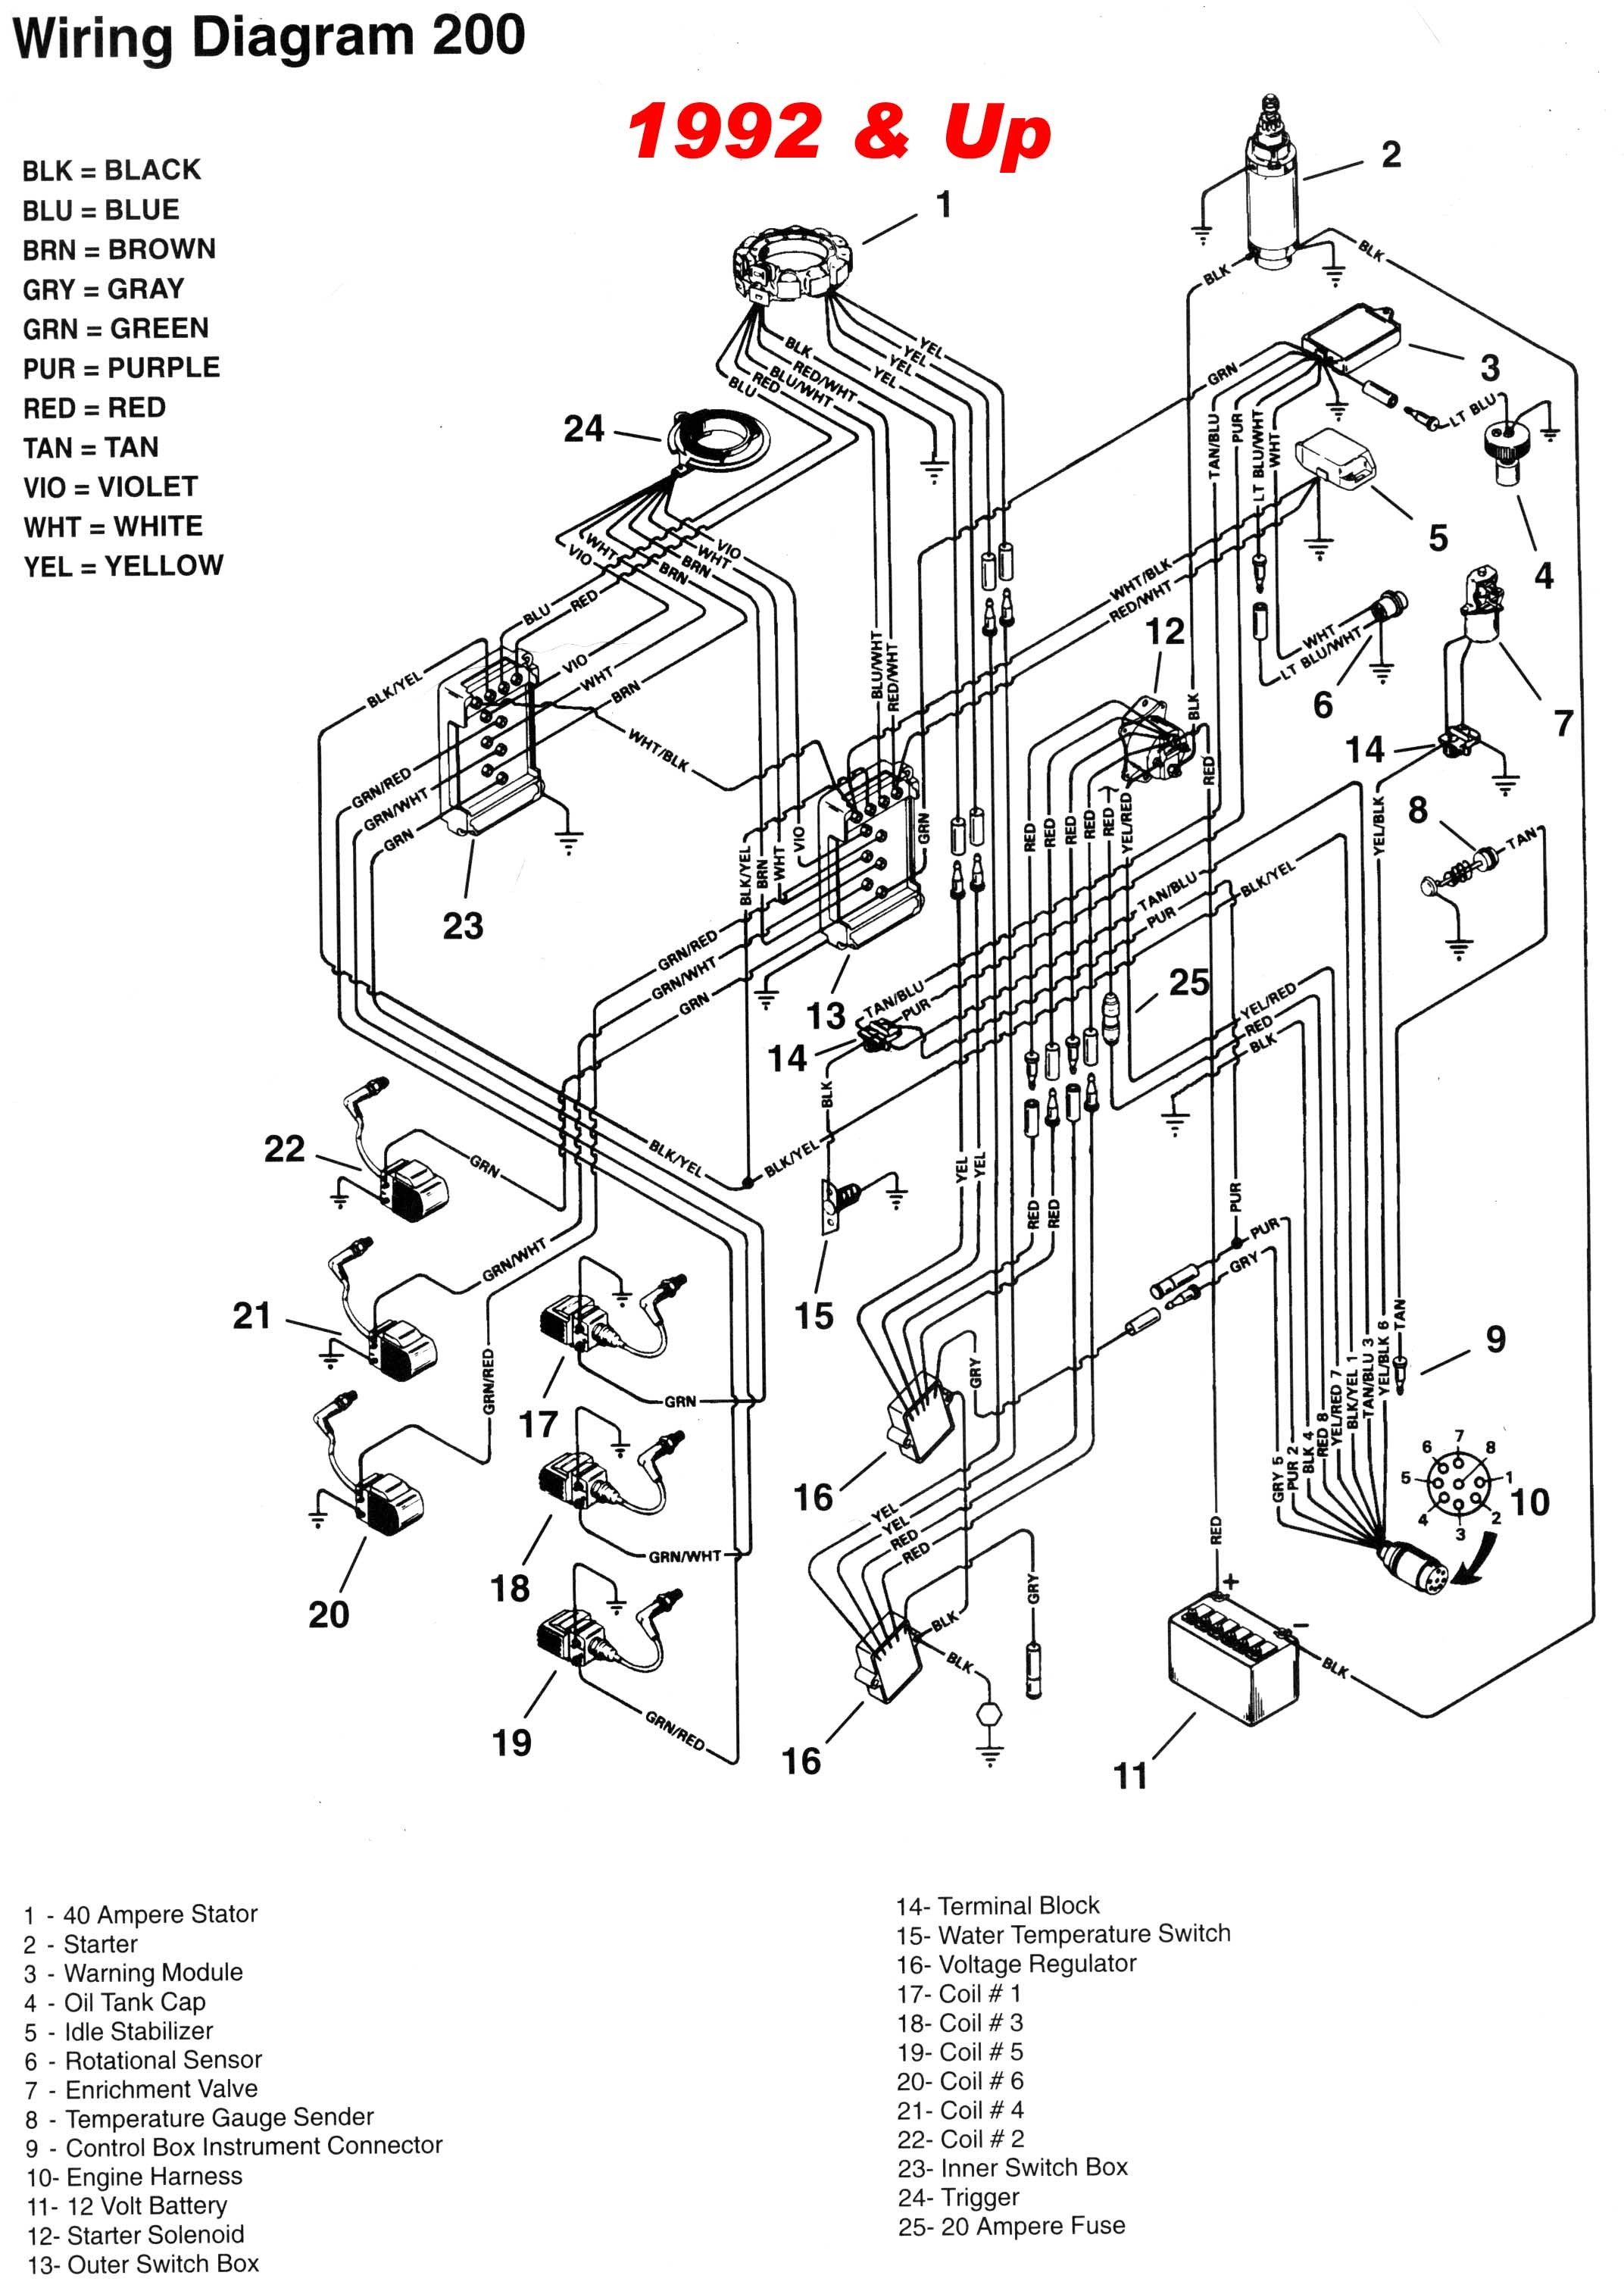 Yamaha 225 Wiring Diagram Dx Schmatic 4 Stroke Diagramsmariner Outboard Motor Library 115